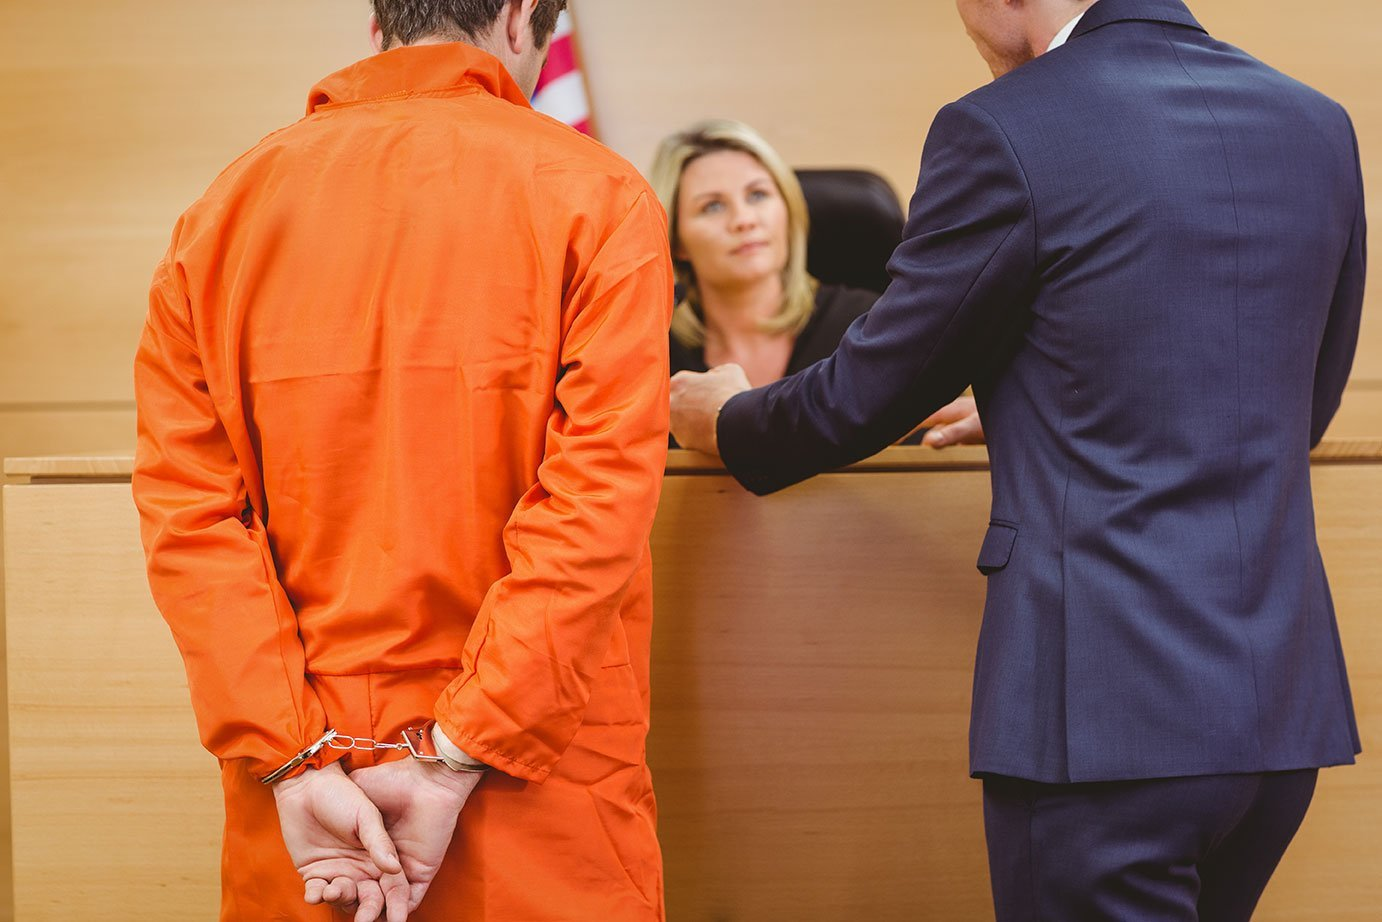 Aggravated assault lawyers in Fayetteville, AR.